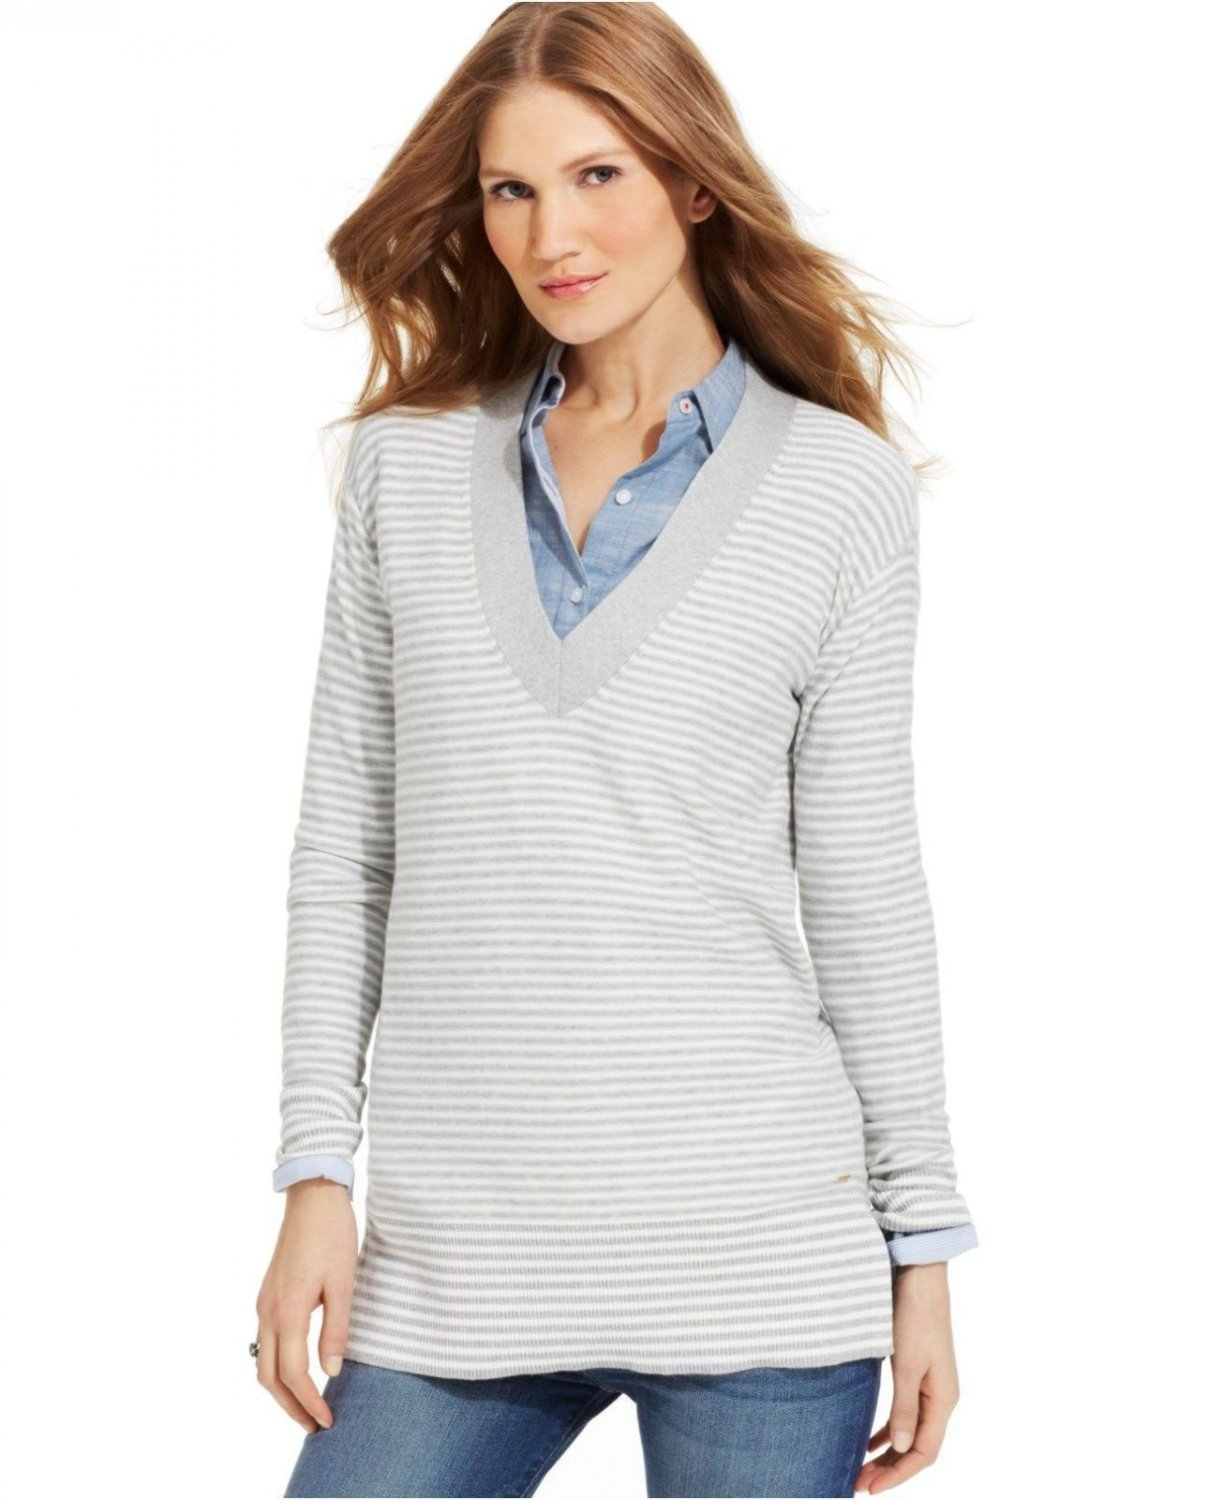 NEW Ladies TOMMY HILFIGER TUNIC SWEATER V Neck Pullover Top XXL Gray/ White Stripe